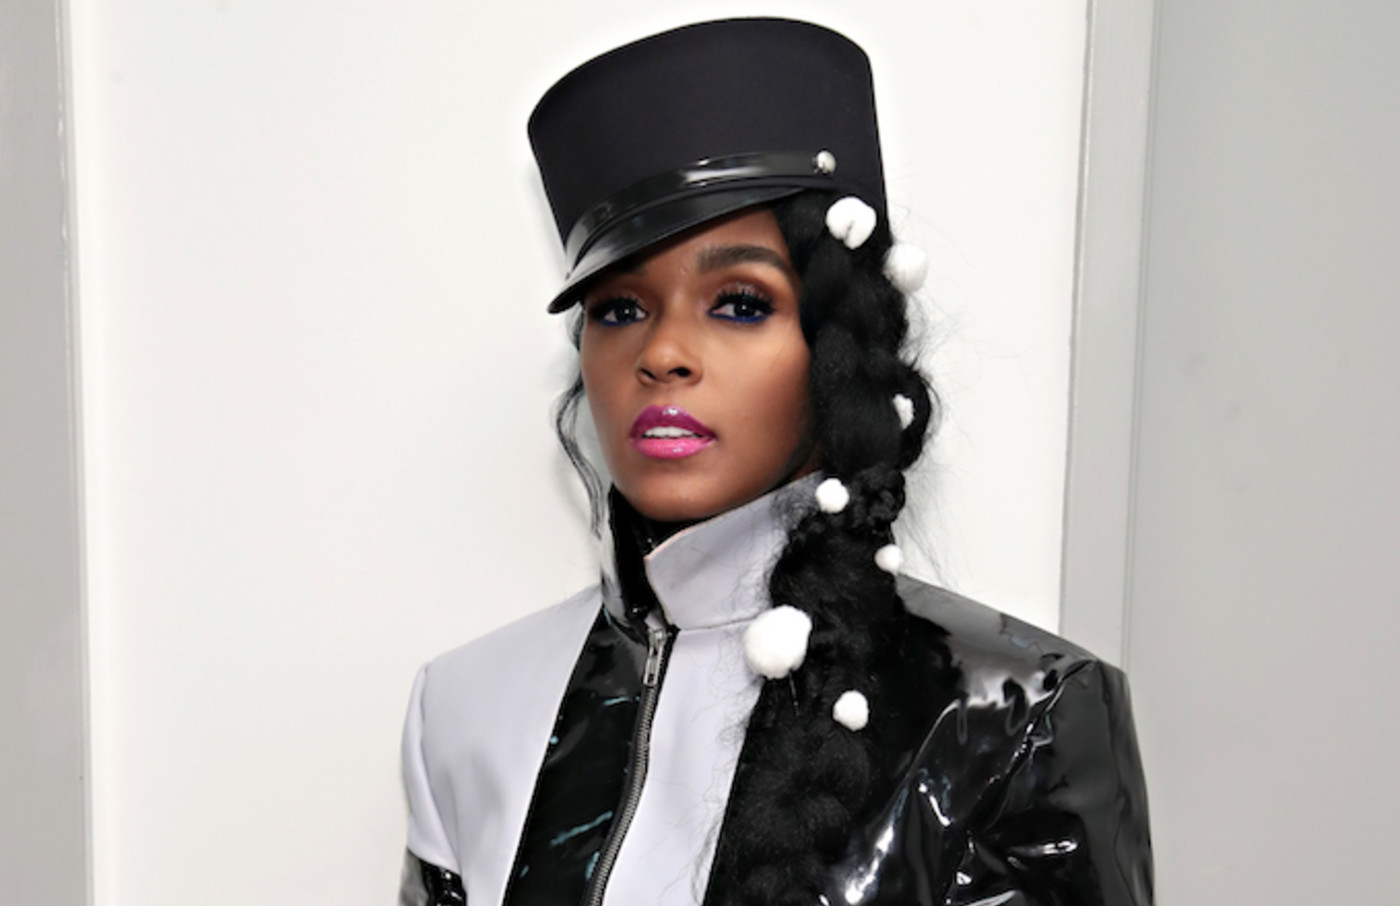 Janelle Monae attends the 'Dirty Computer' screening at The Film Society of Lincoln Center.